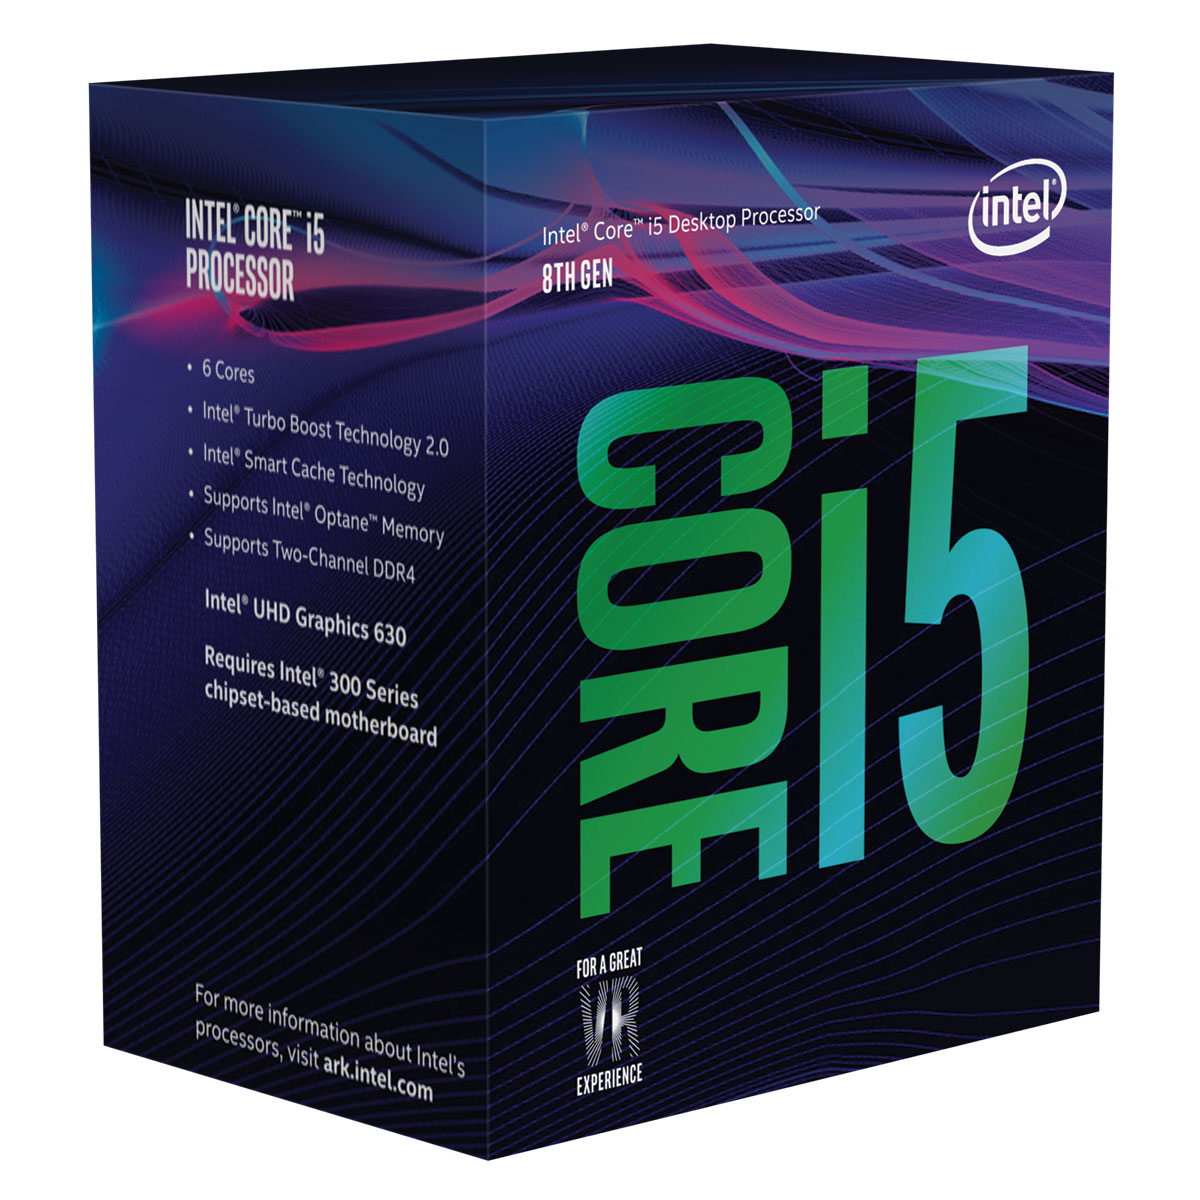 Processeur Intel Core i5-8500 (3.0 GHz) Processeur 6-Core Socket 1151 Cache L3 9 Mo Intel UHD Graphics 630 0.014 micron (version boîte - garantie Intel 3 ans)